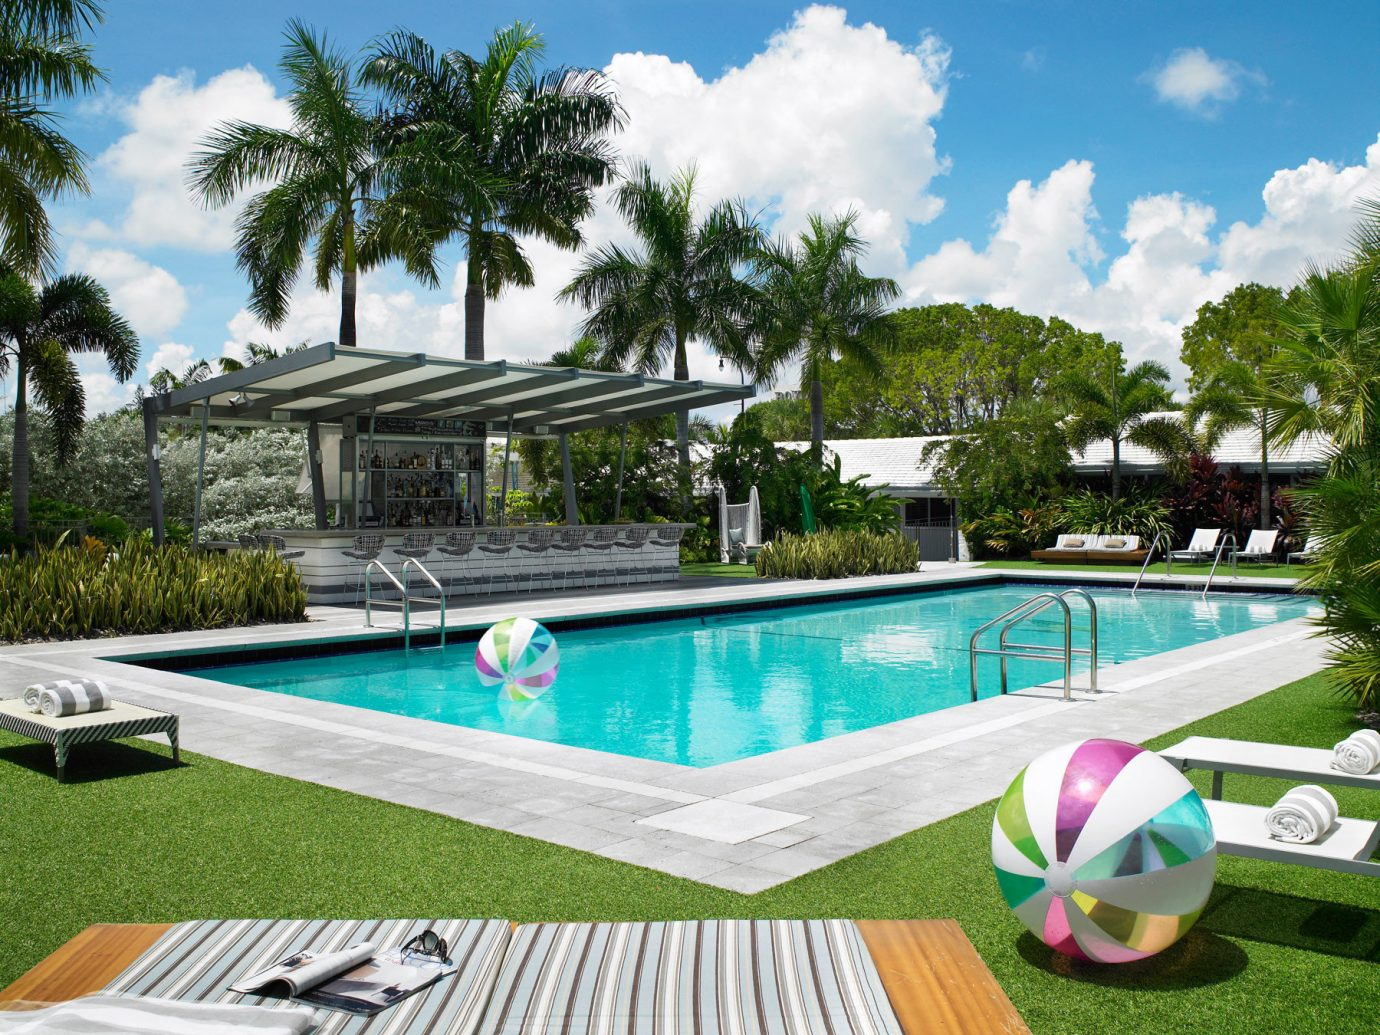 Trip Ideas tree outdoor grass swimming pool leisure property estate Villa backyard Resort vacation green home condominium Pool real estate park mansion